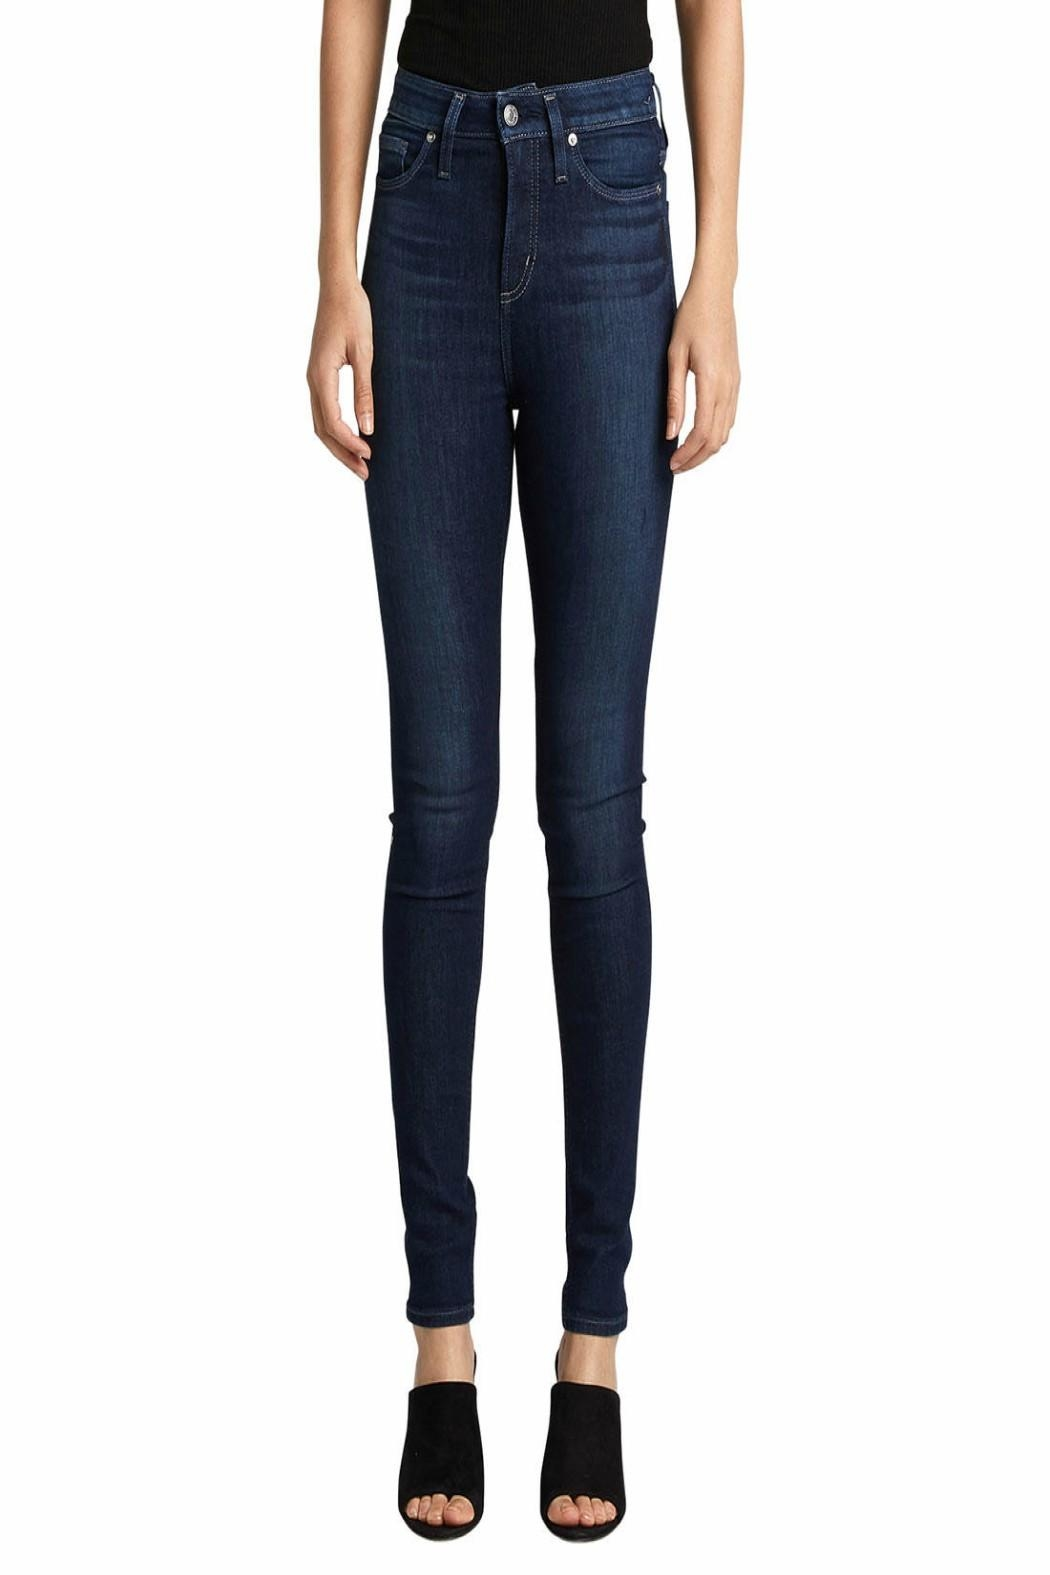 Silver Jeans Co. High-Note High-Rise Skinny - Main Image